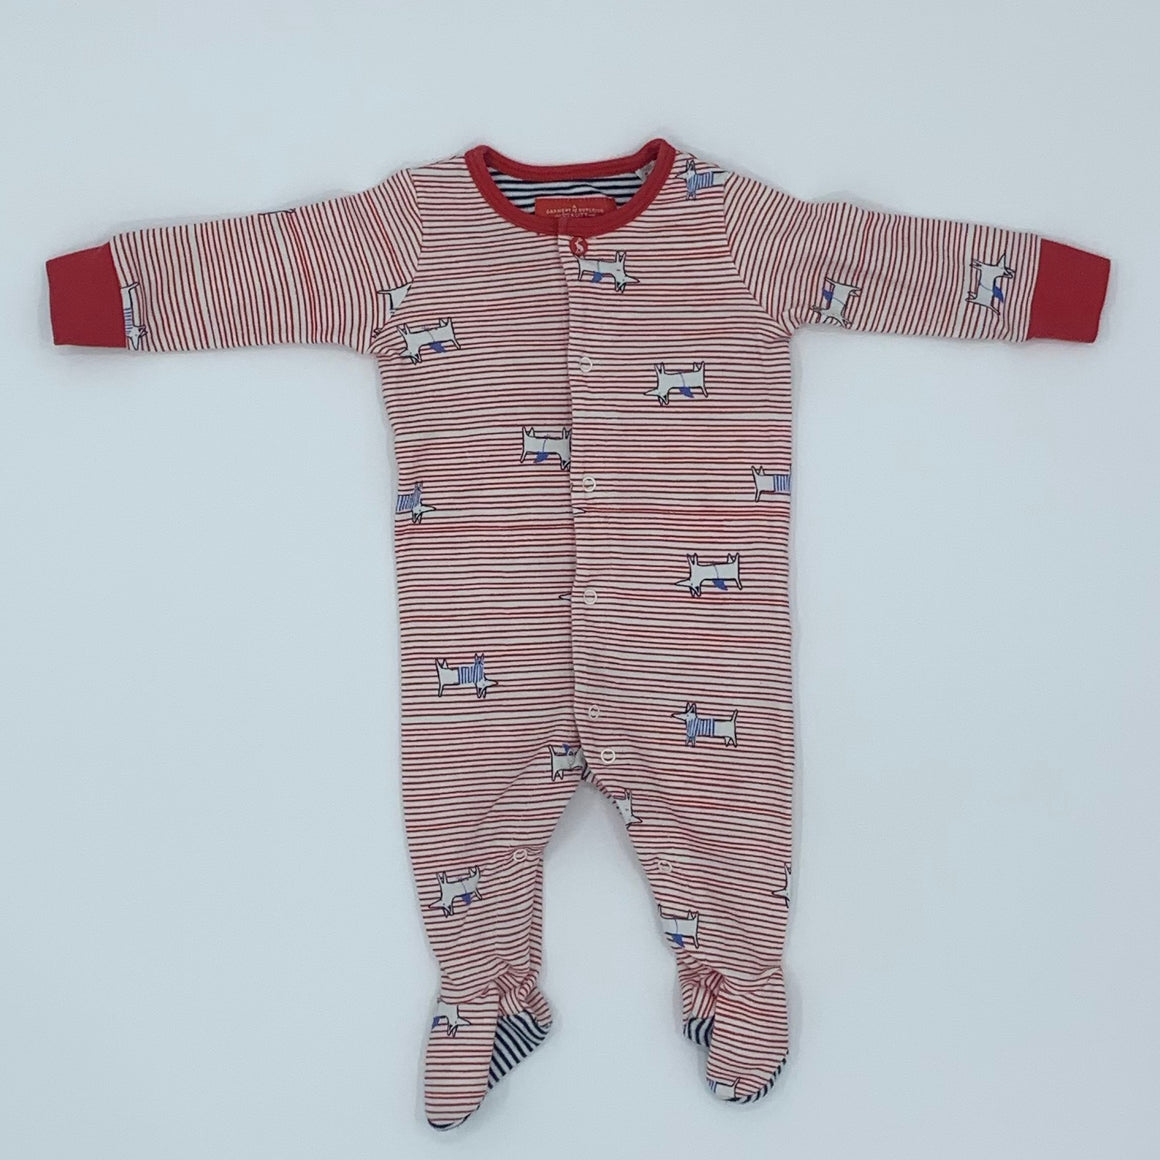 Hardly Worn Joules doggy sleepsuit size 0-3 months